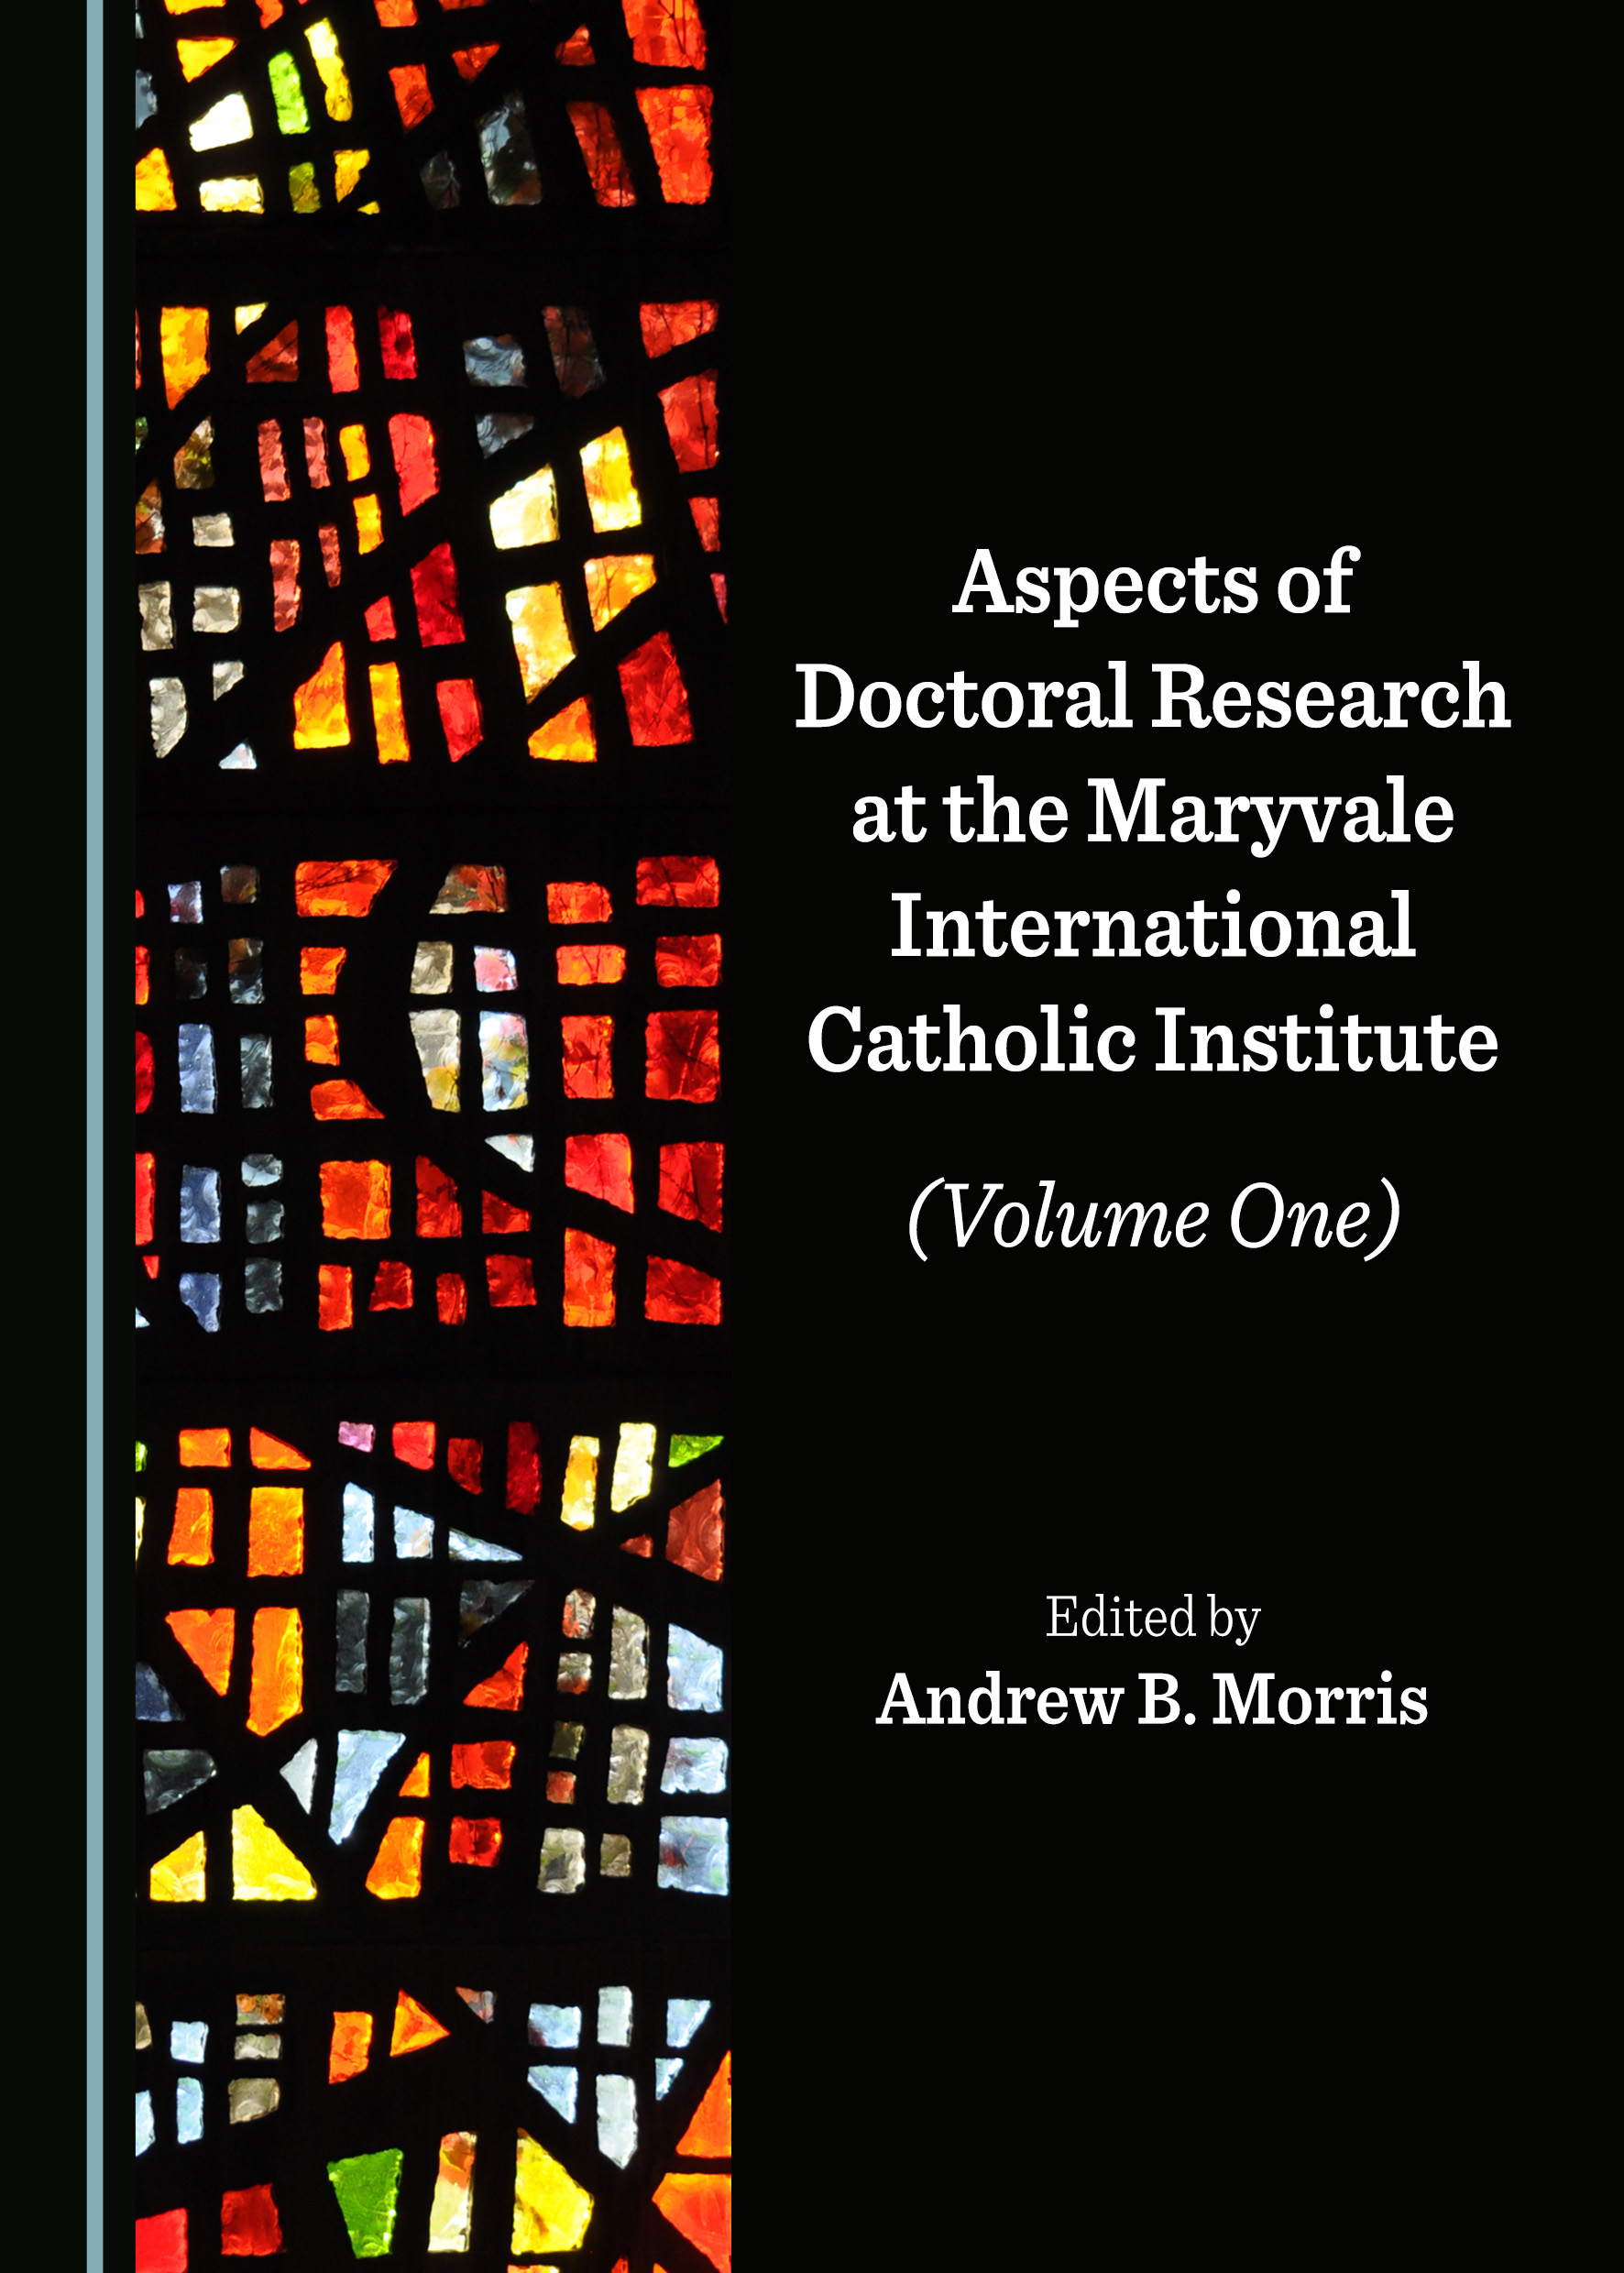 Aspects of Doctoral Research at the Maryvale International Catholic Institute (Volume One)